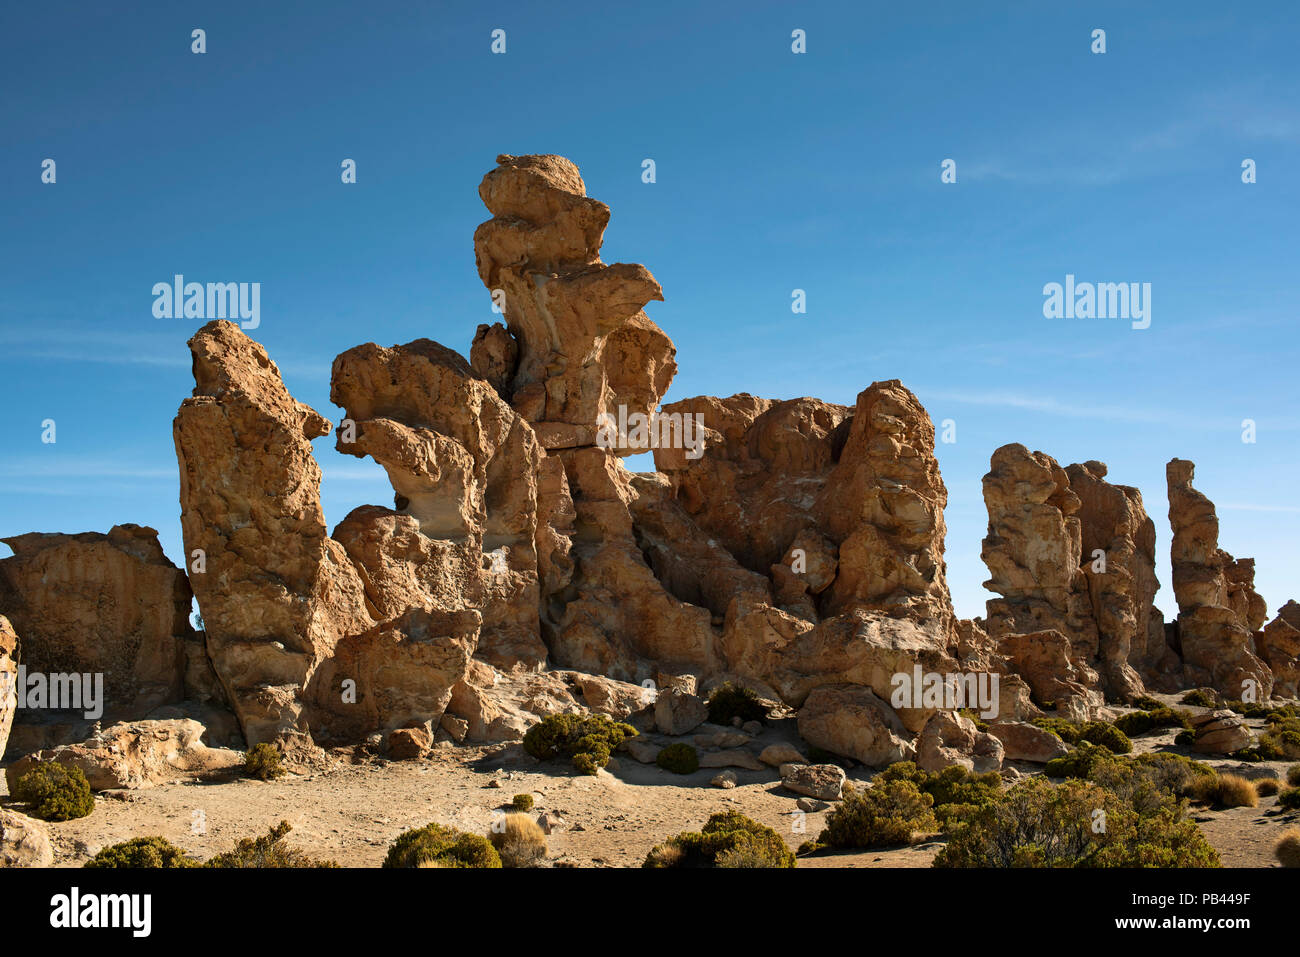 Interesting and spectacular group of bright orange rocks shaped by wind erosion. Valle de Rocas (Valley of the Rocks). Bolivia, South America. - Stock Image